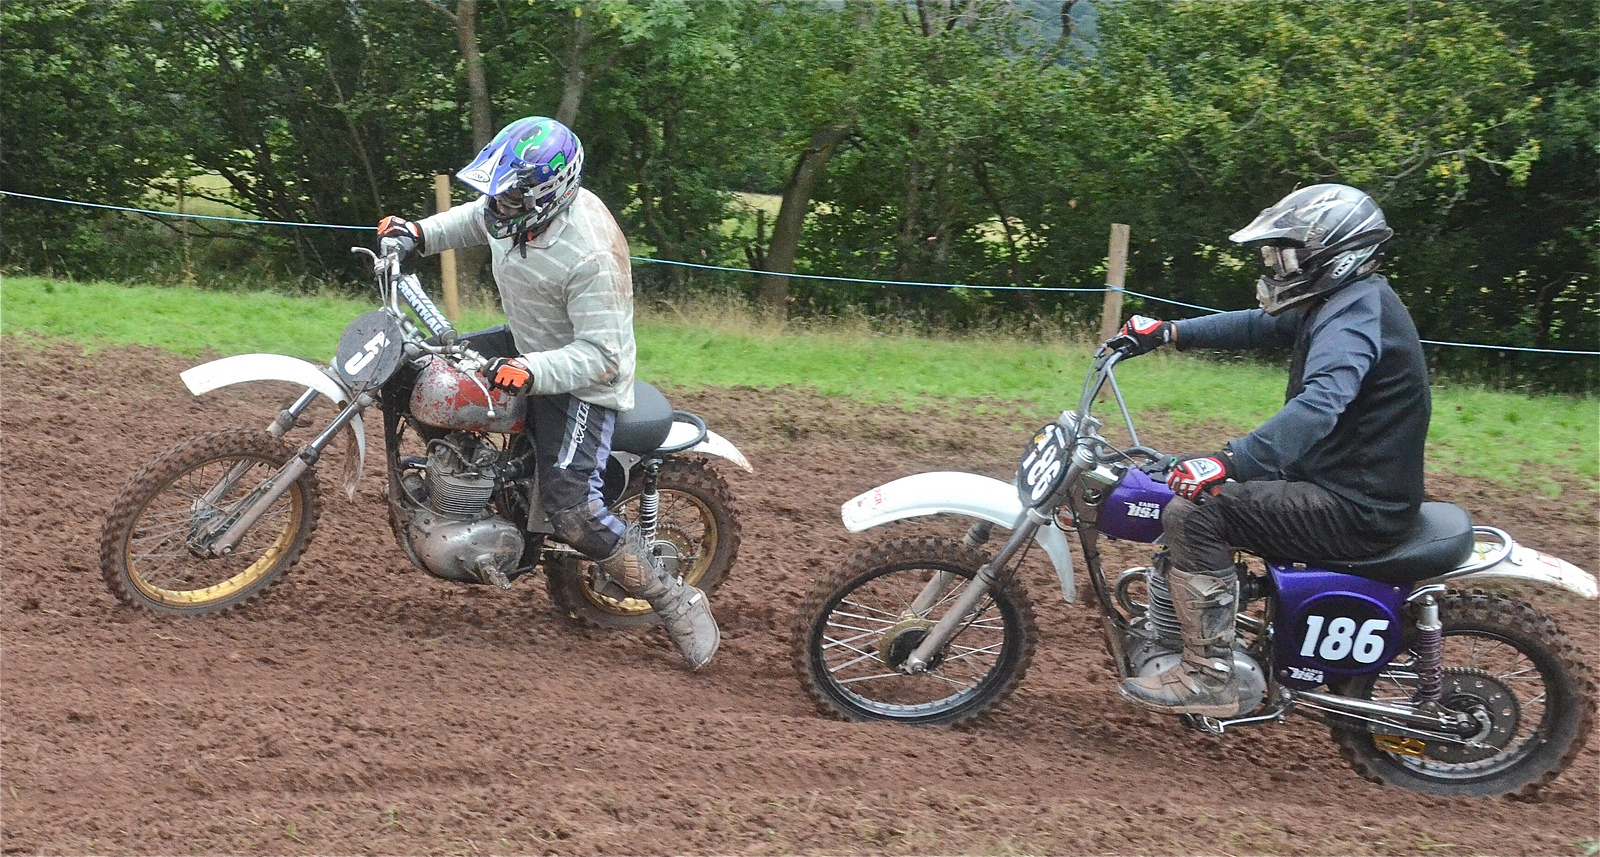 Llanthony Classic Scramble Photos September 2015 classicdirtbikerider.com..47